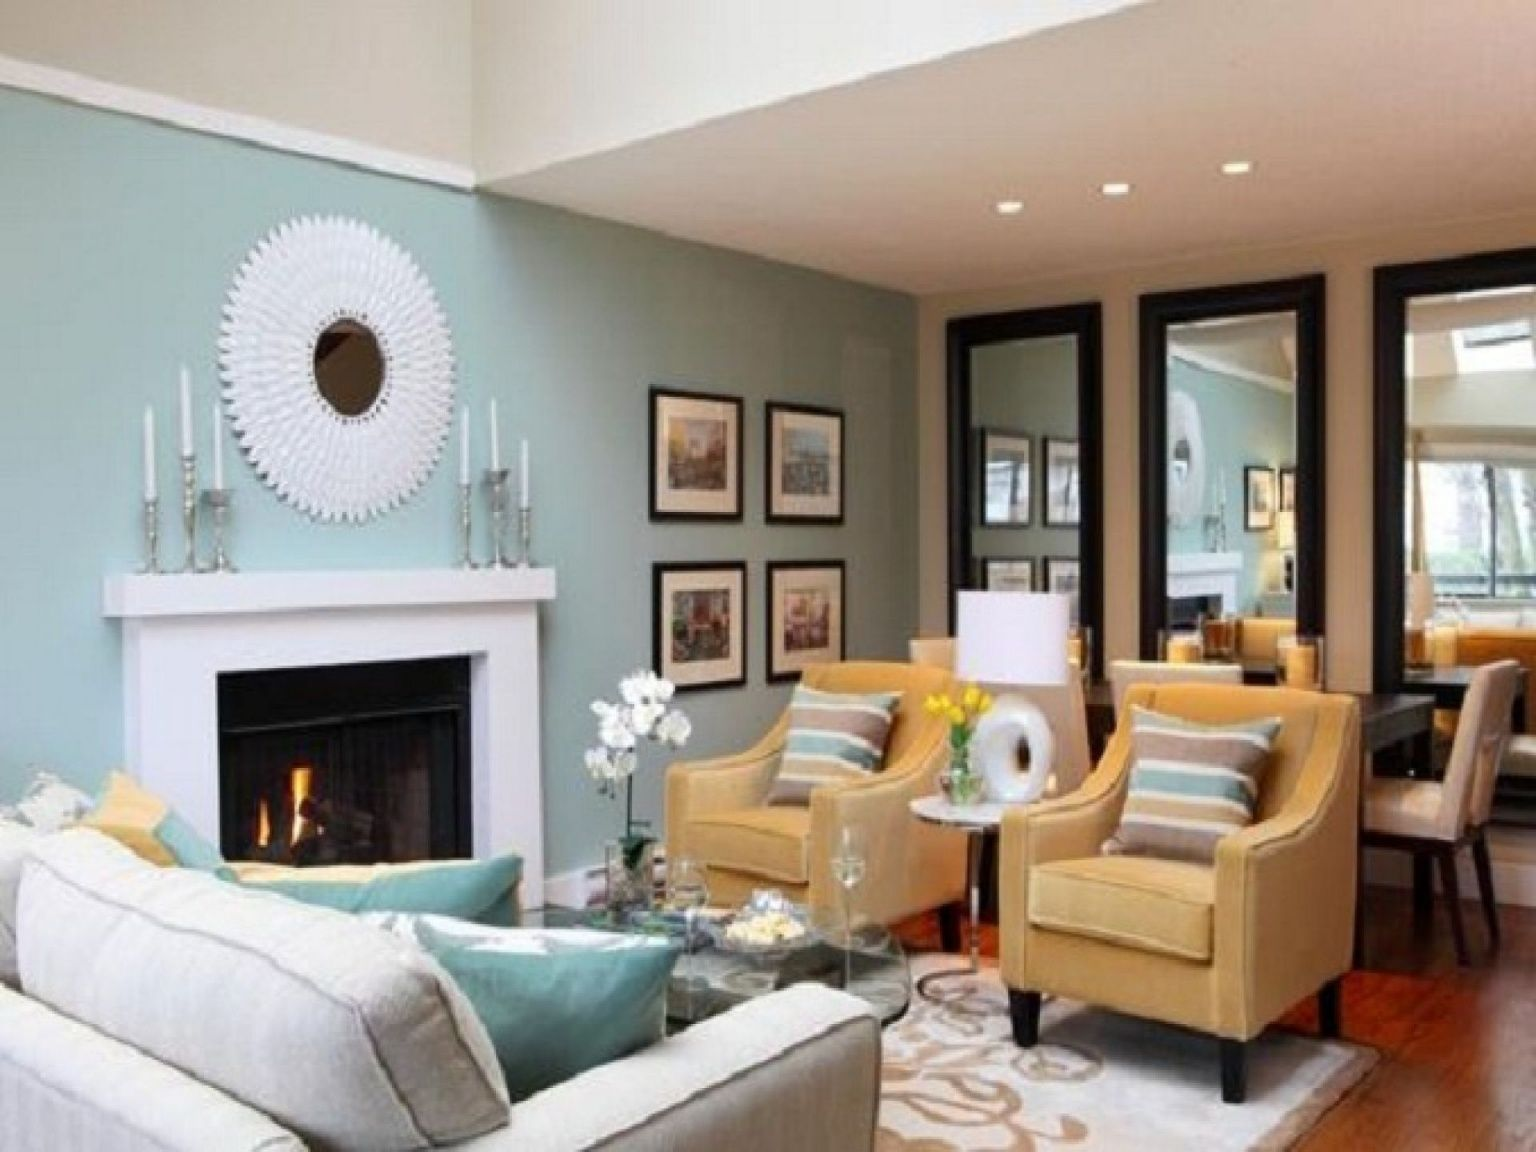 Luxury Contemporary Colors Living Room In 2020 Living Room Color Schemes Small Living Room Design Small Living Rooms